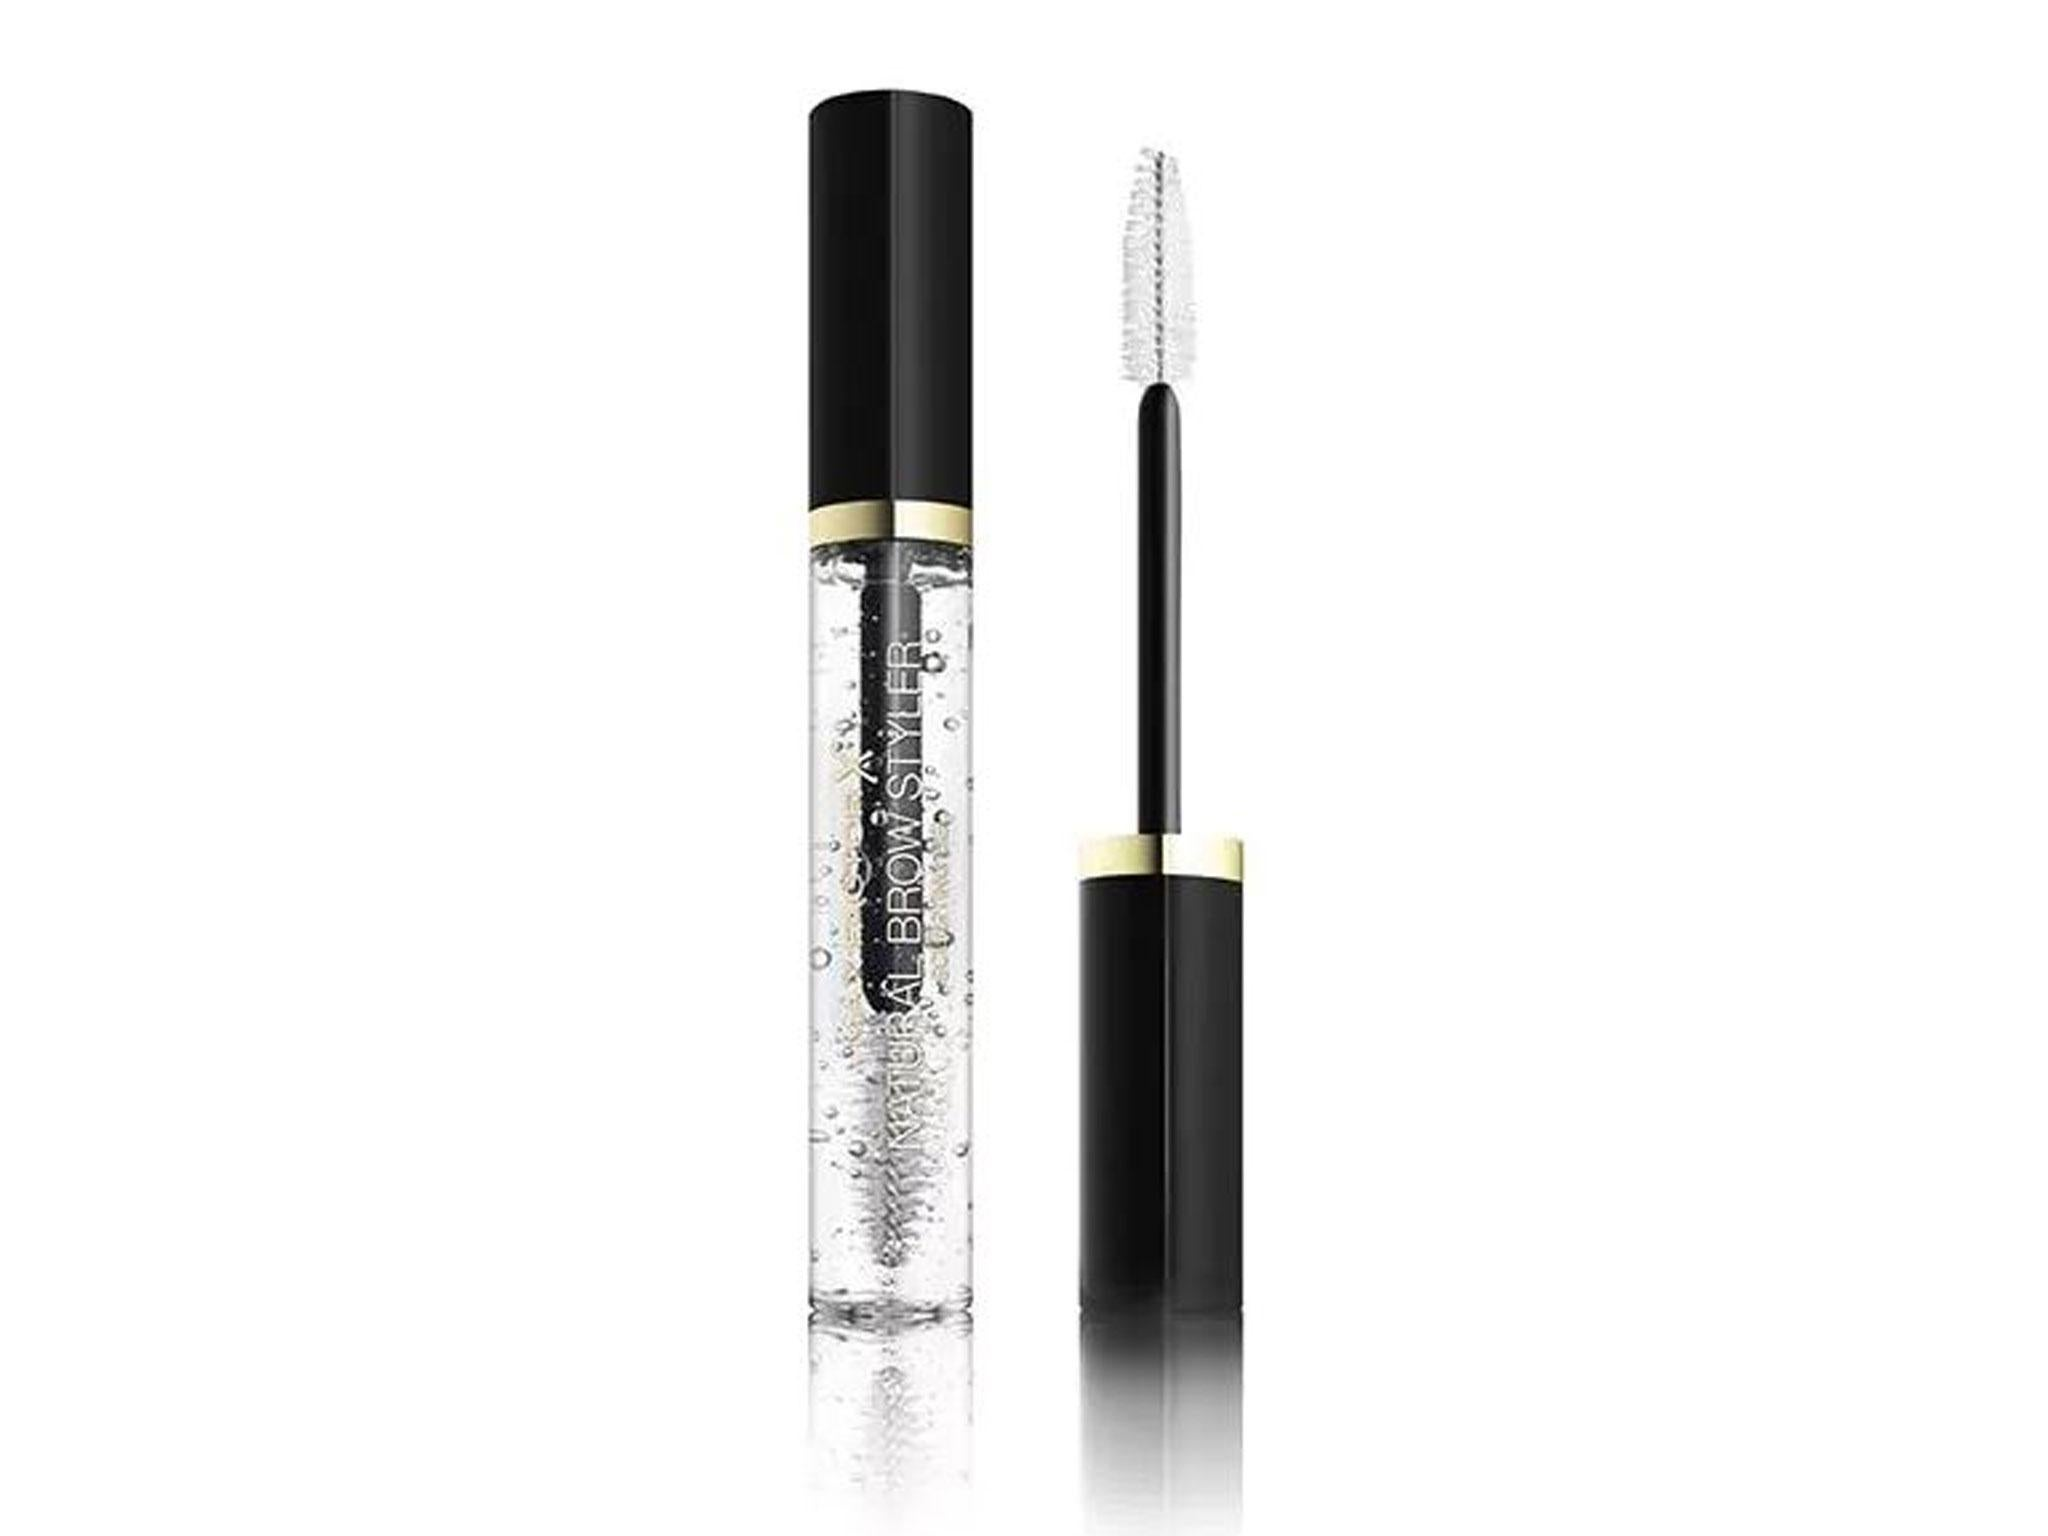 13 best eye makeup products for mature skin | The Independent